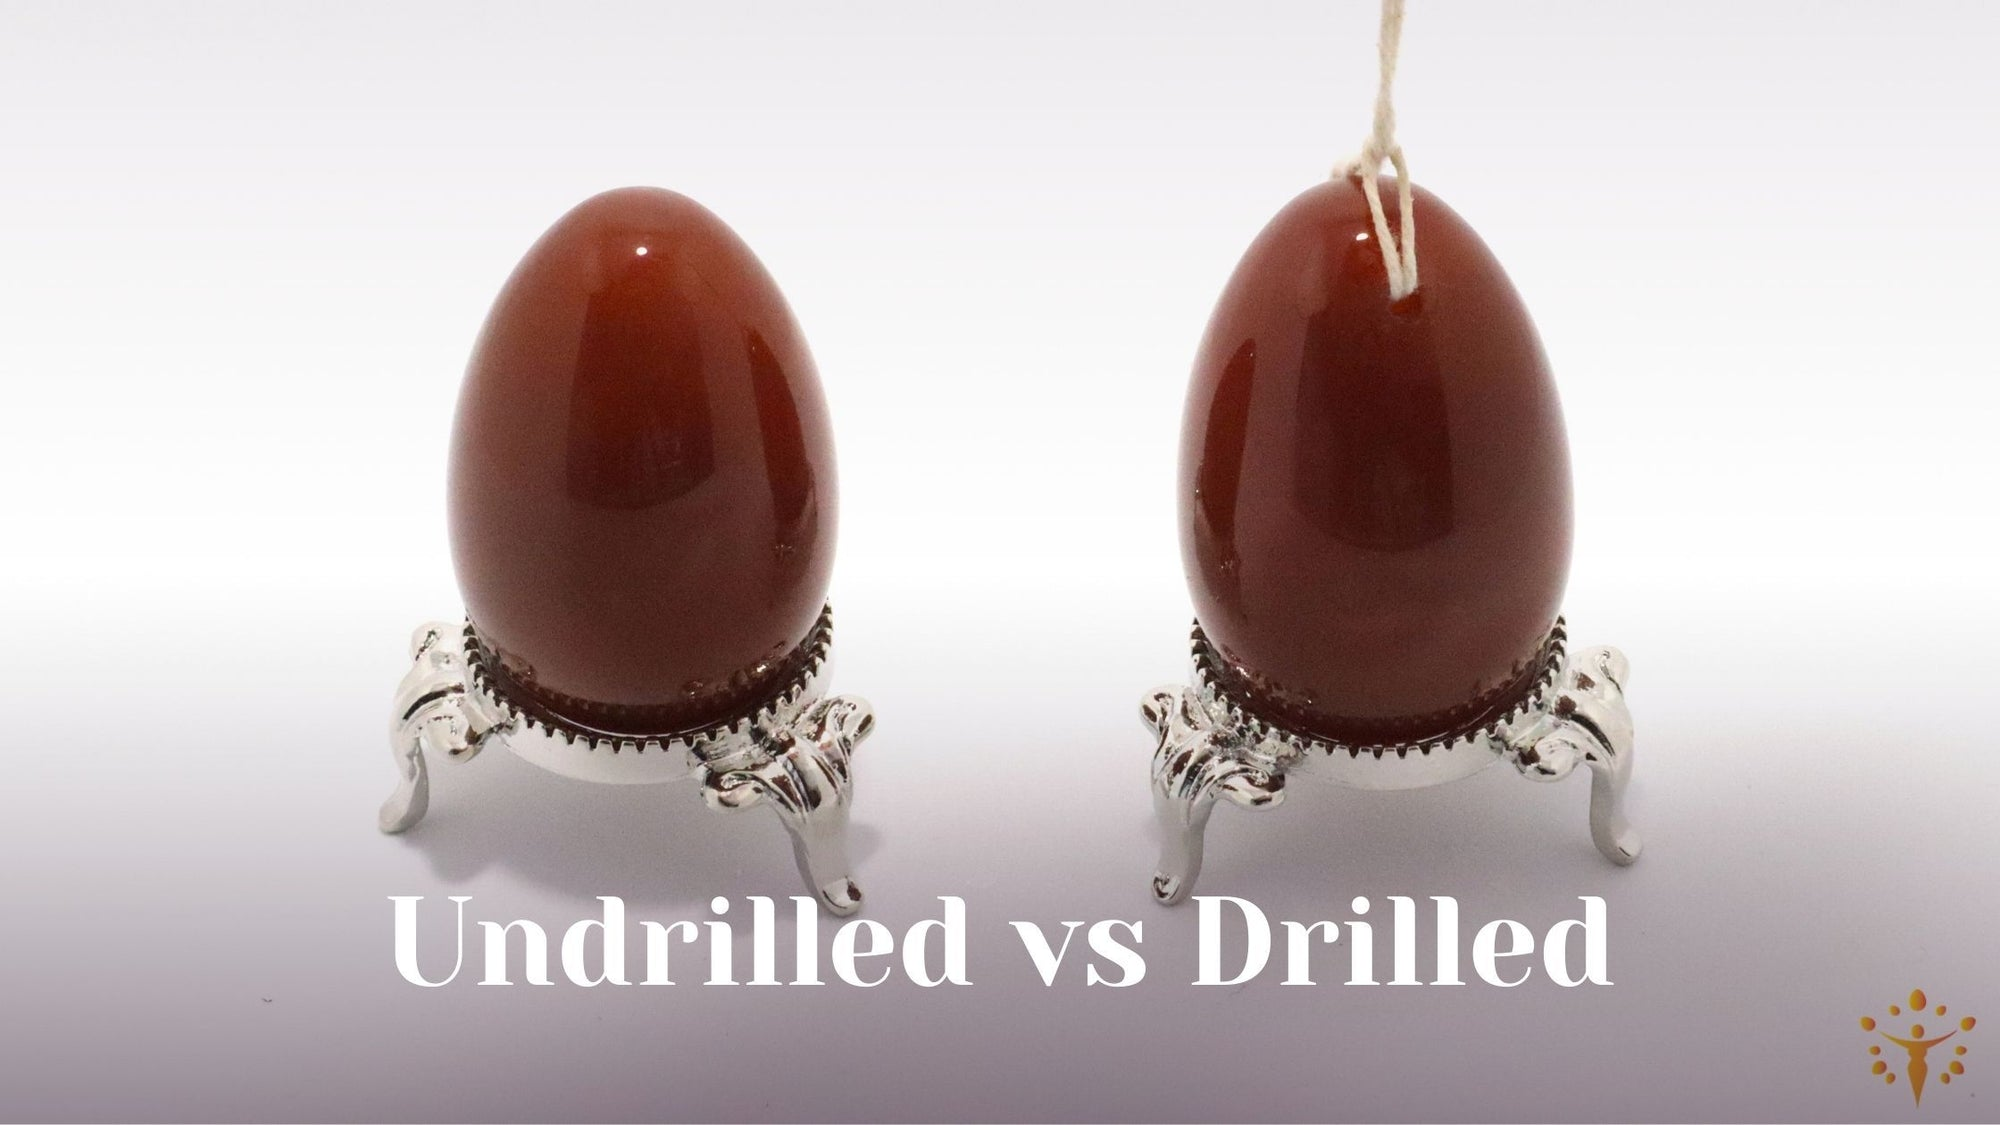 What to choose: Undrilled or Drilled Yoni Egg. Benefits Pros and Cons